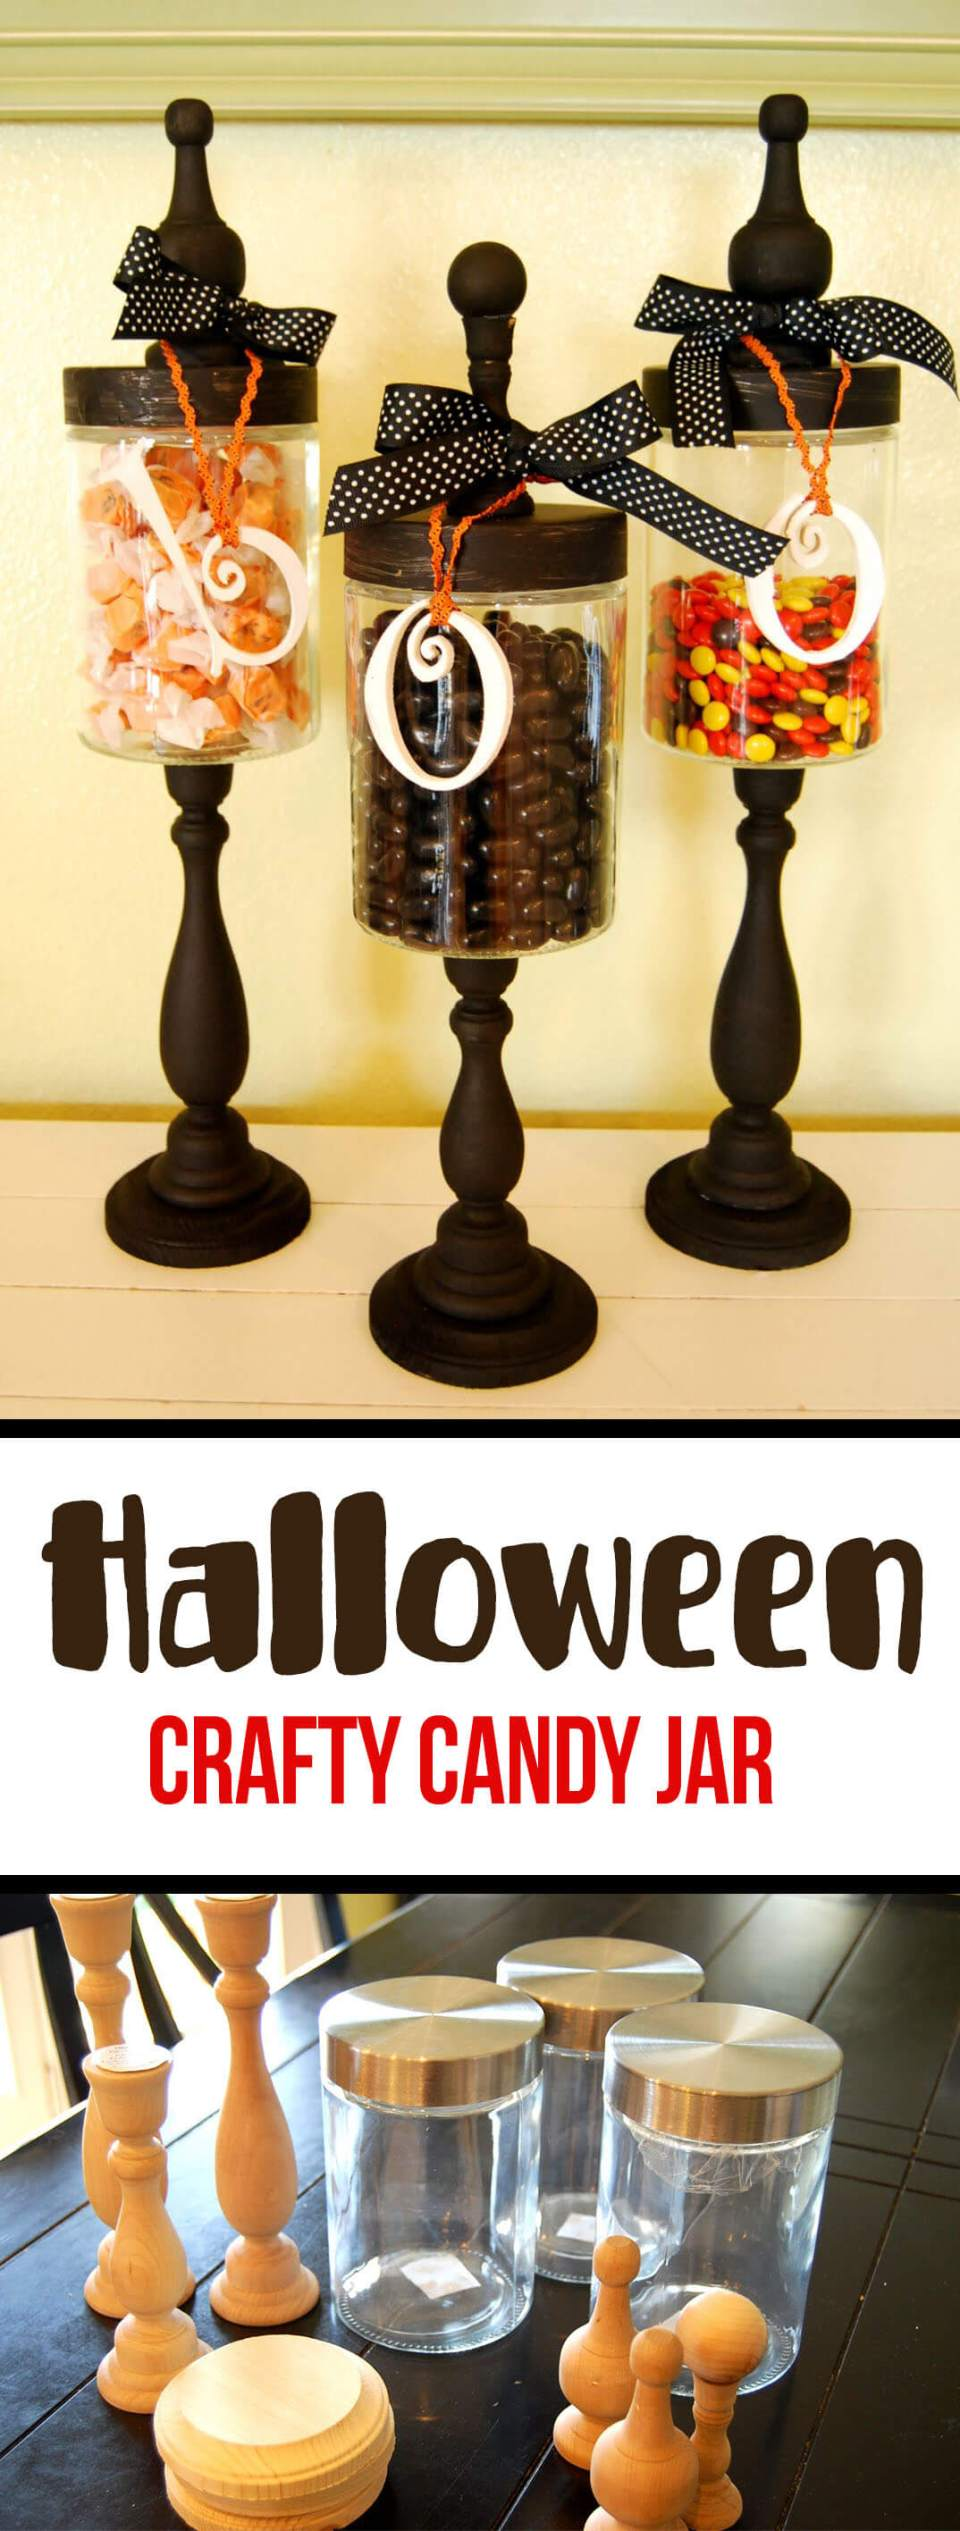 DIY Mason Jar Halloween Crafts: DIY Wicked Witch Storage Jars